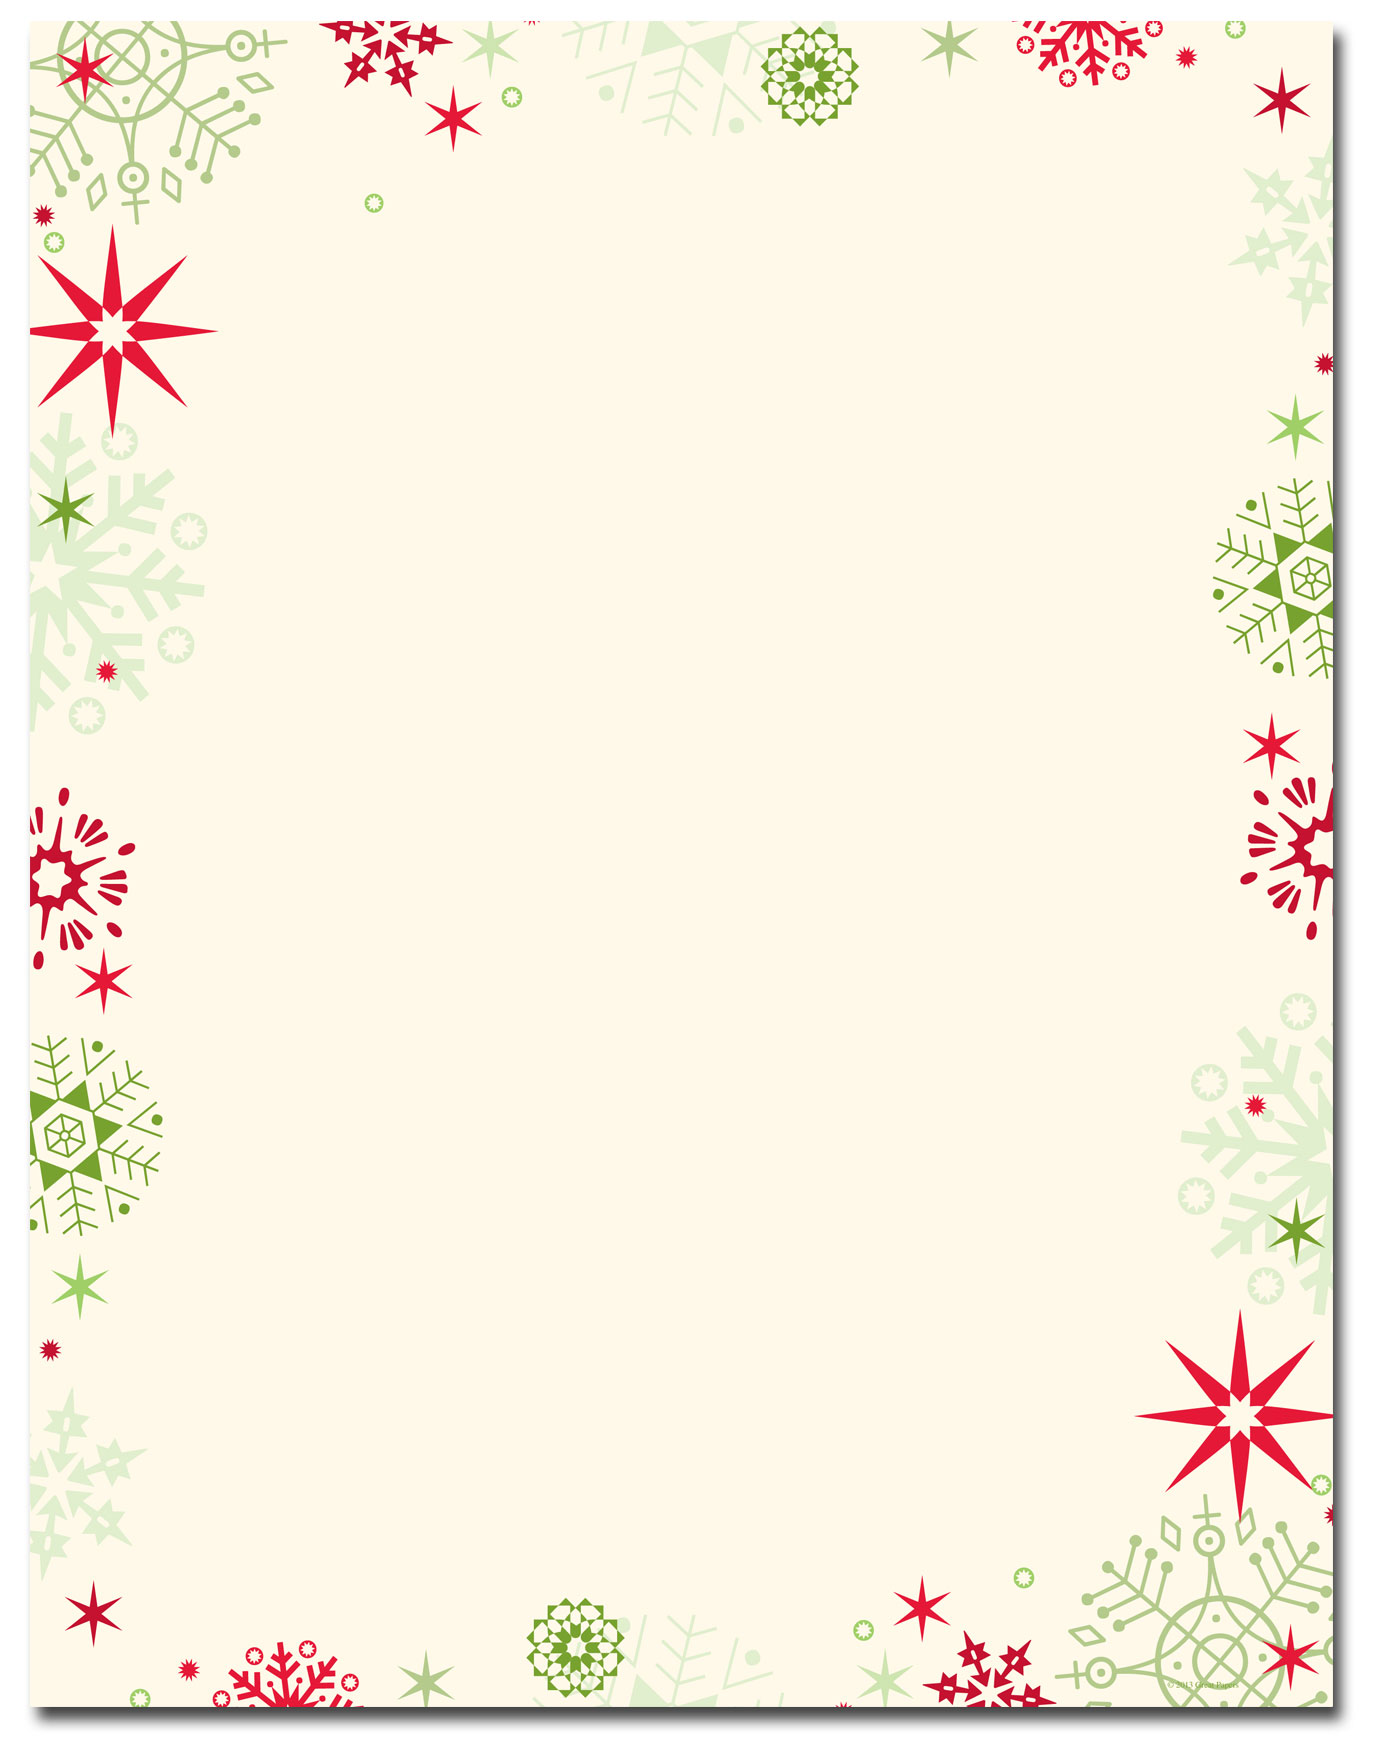 image regarding Free Printable Thanksgiving Borders titled Letterhead Printables For Xmas - Xmas Printables